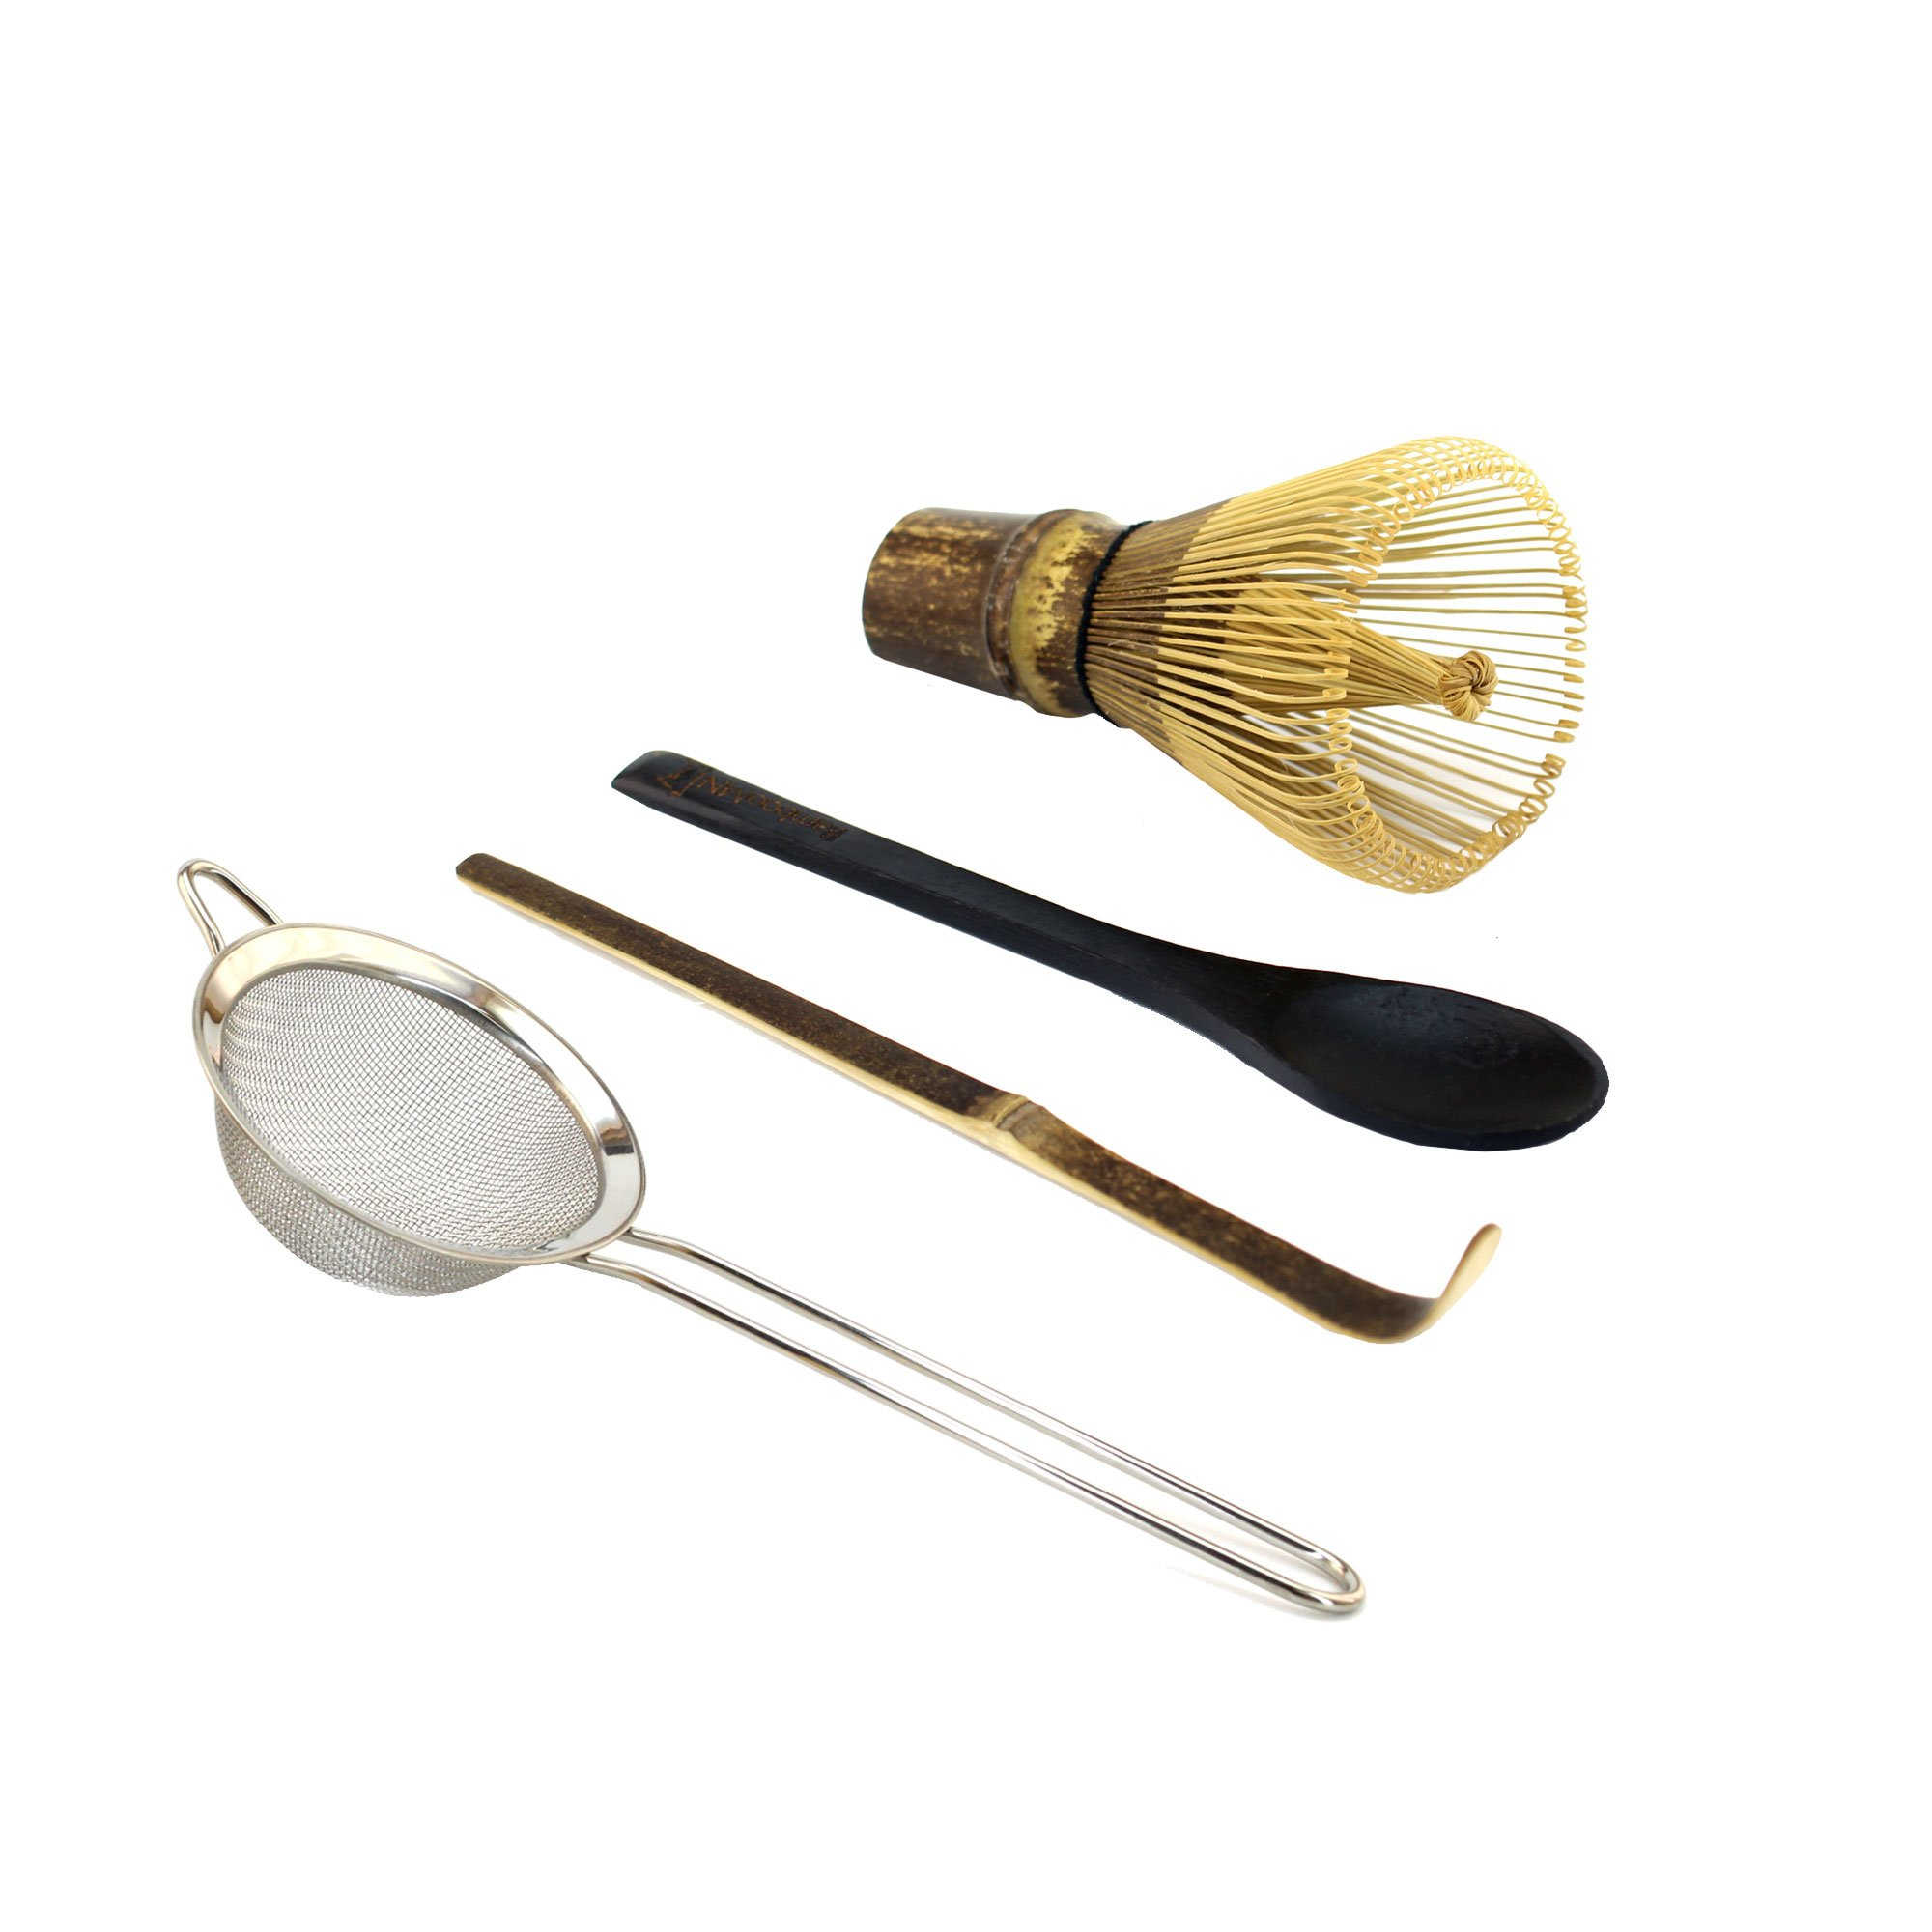 BambooMN Japanese Tea Set, Black Matcha Whisk (Chasen), Tea Strainer, Traditional Black Scoop (Chashaku), Black Teaspoon, The Perfect Set to Prepare a Traditional Cup of Matcha - 1 Set